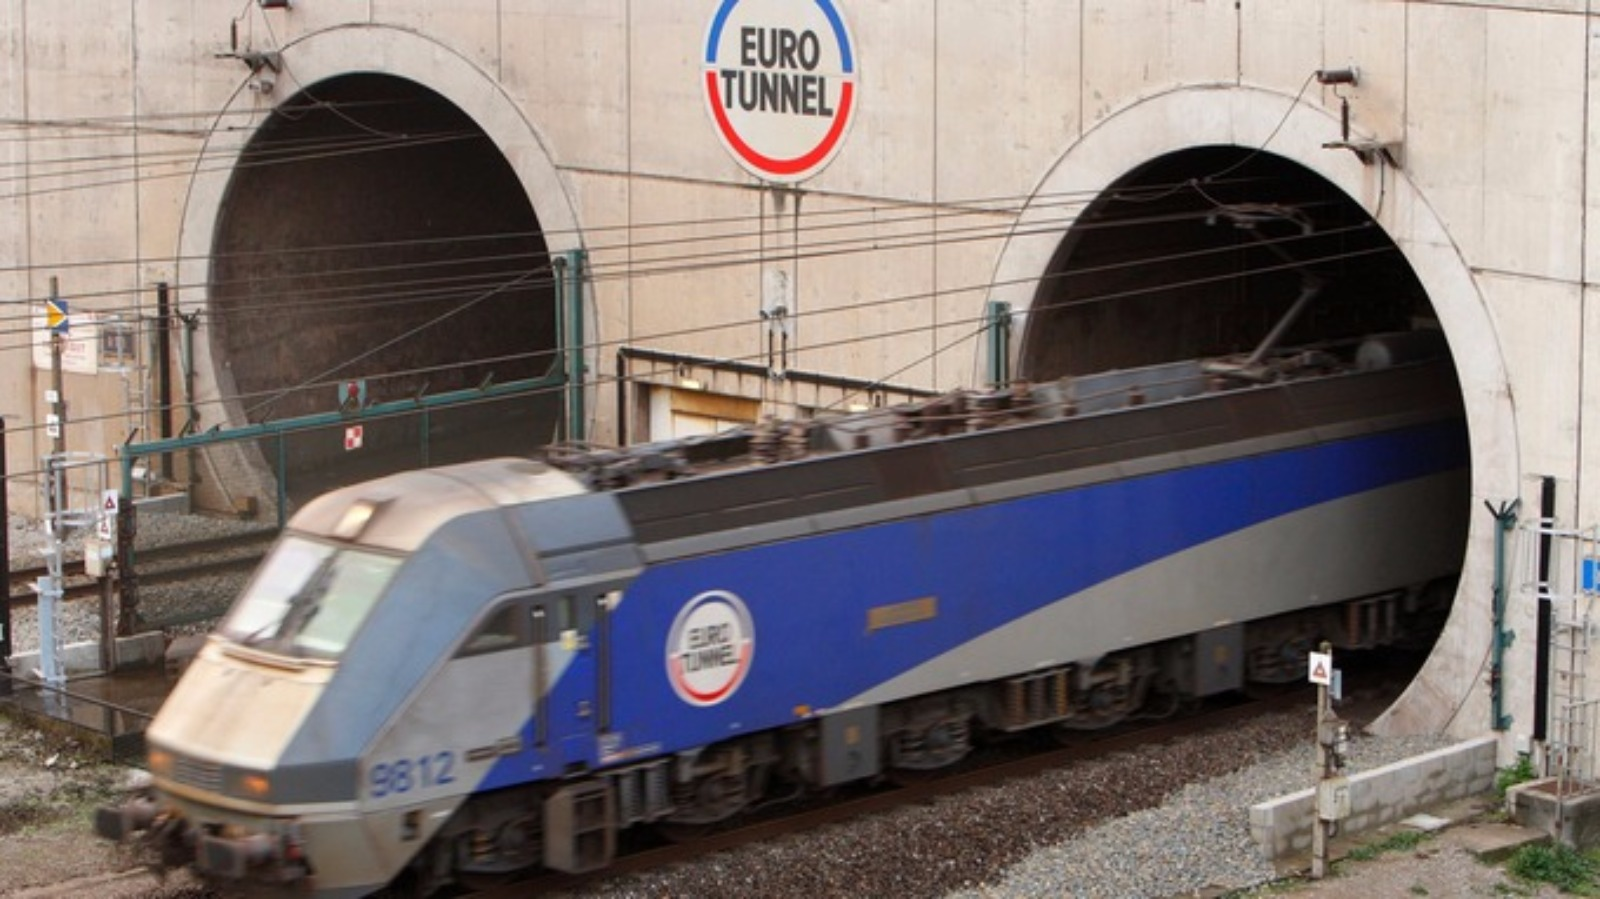 french ferry workers block eurotunnel causing suspension